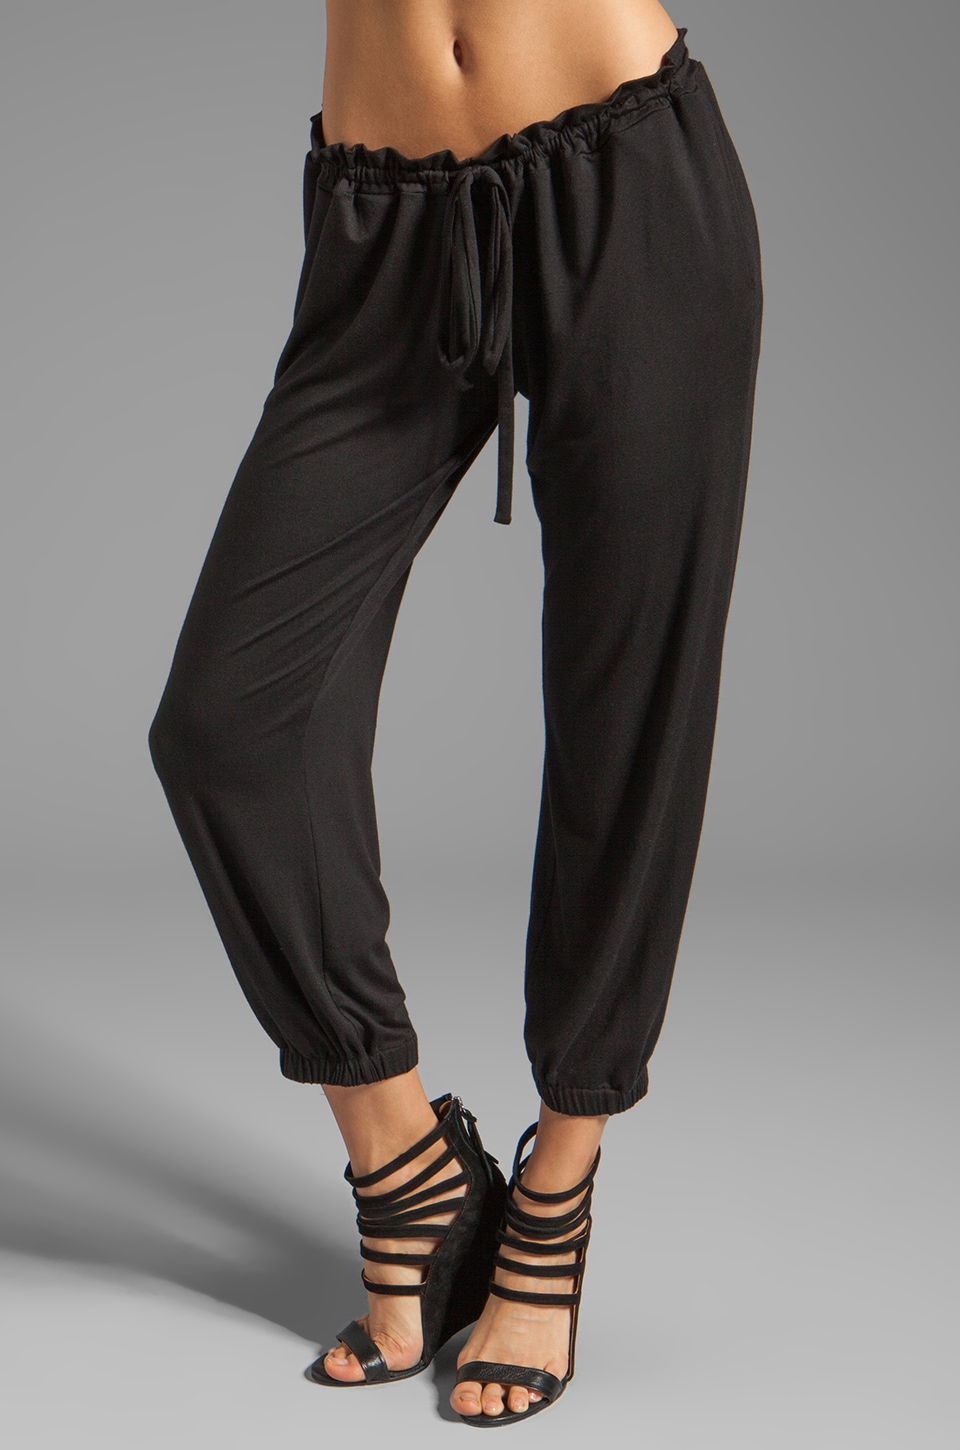 Rachel Pally Presley Pant in Black